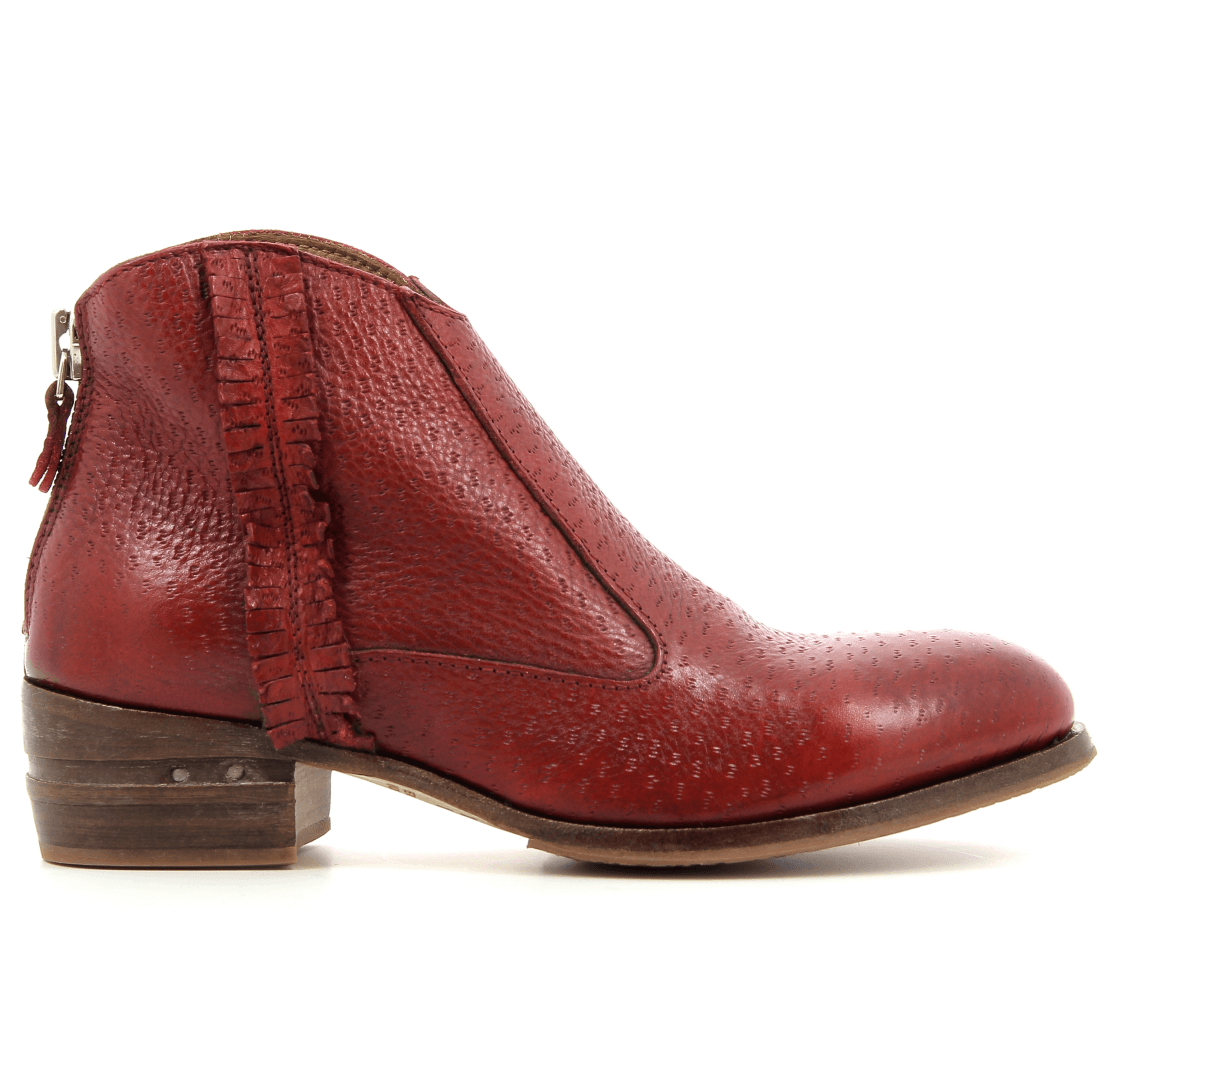 Chaussures - Bottines Moma gfNWD